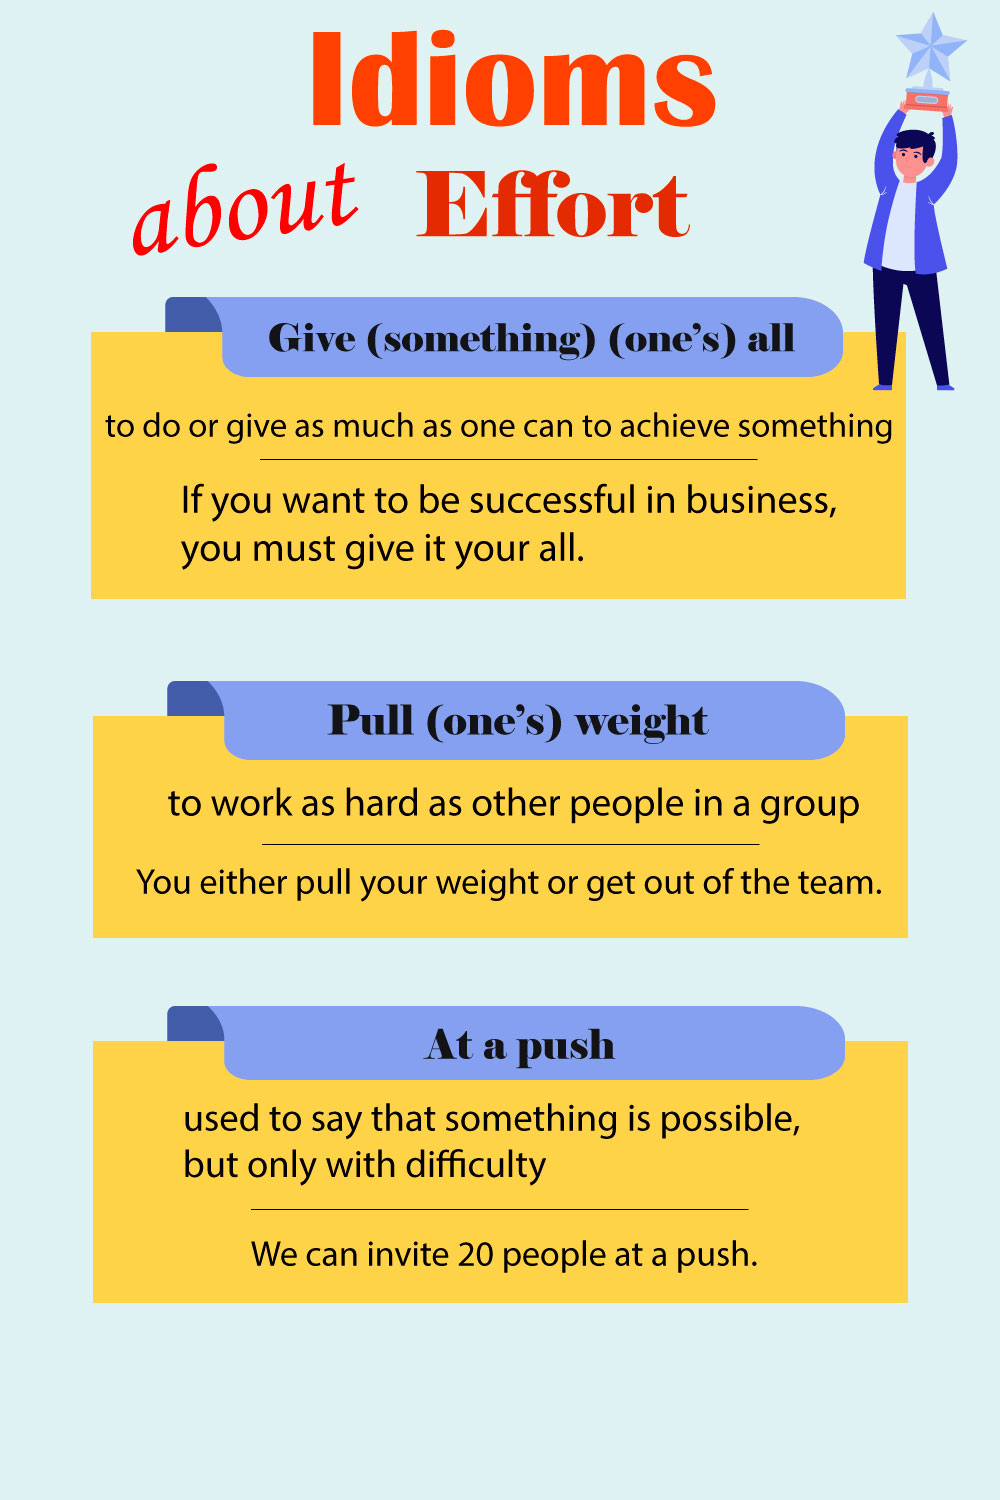 Idioms about effort